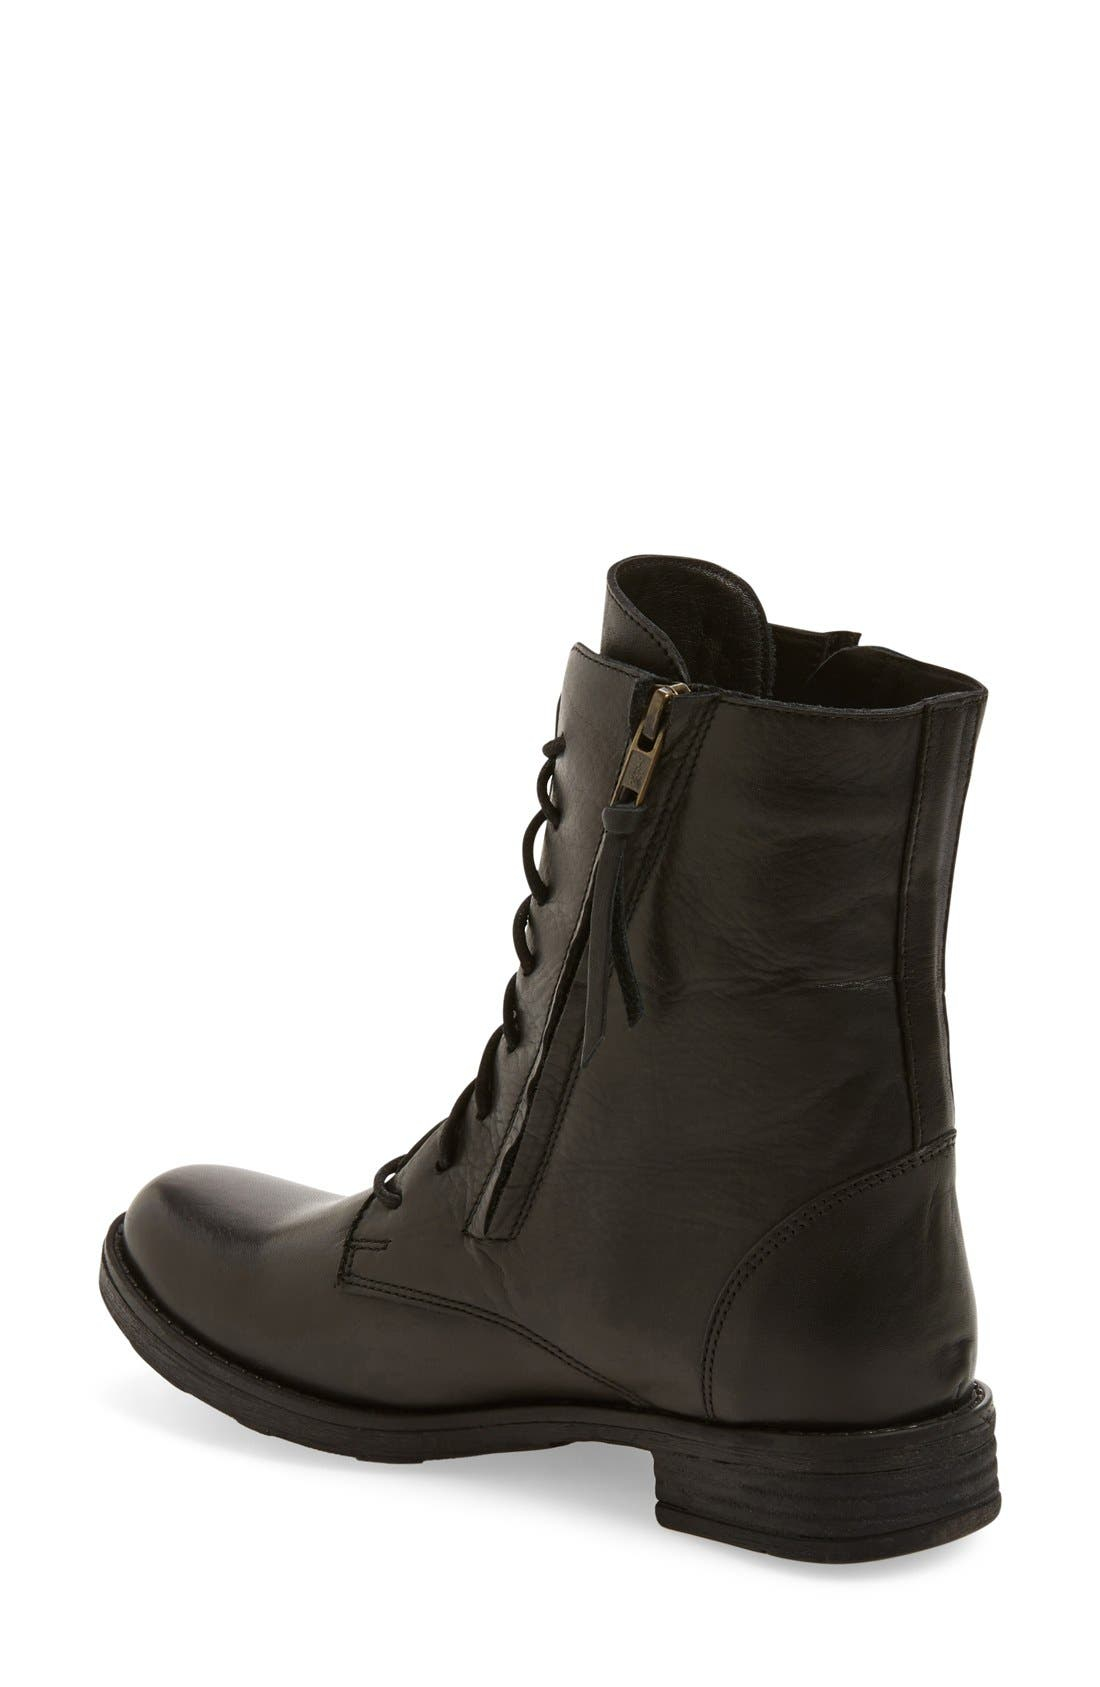 Alternate Image 2  - Miz Mooz 'Tuned' Lace-Up Boot (Women)